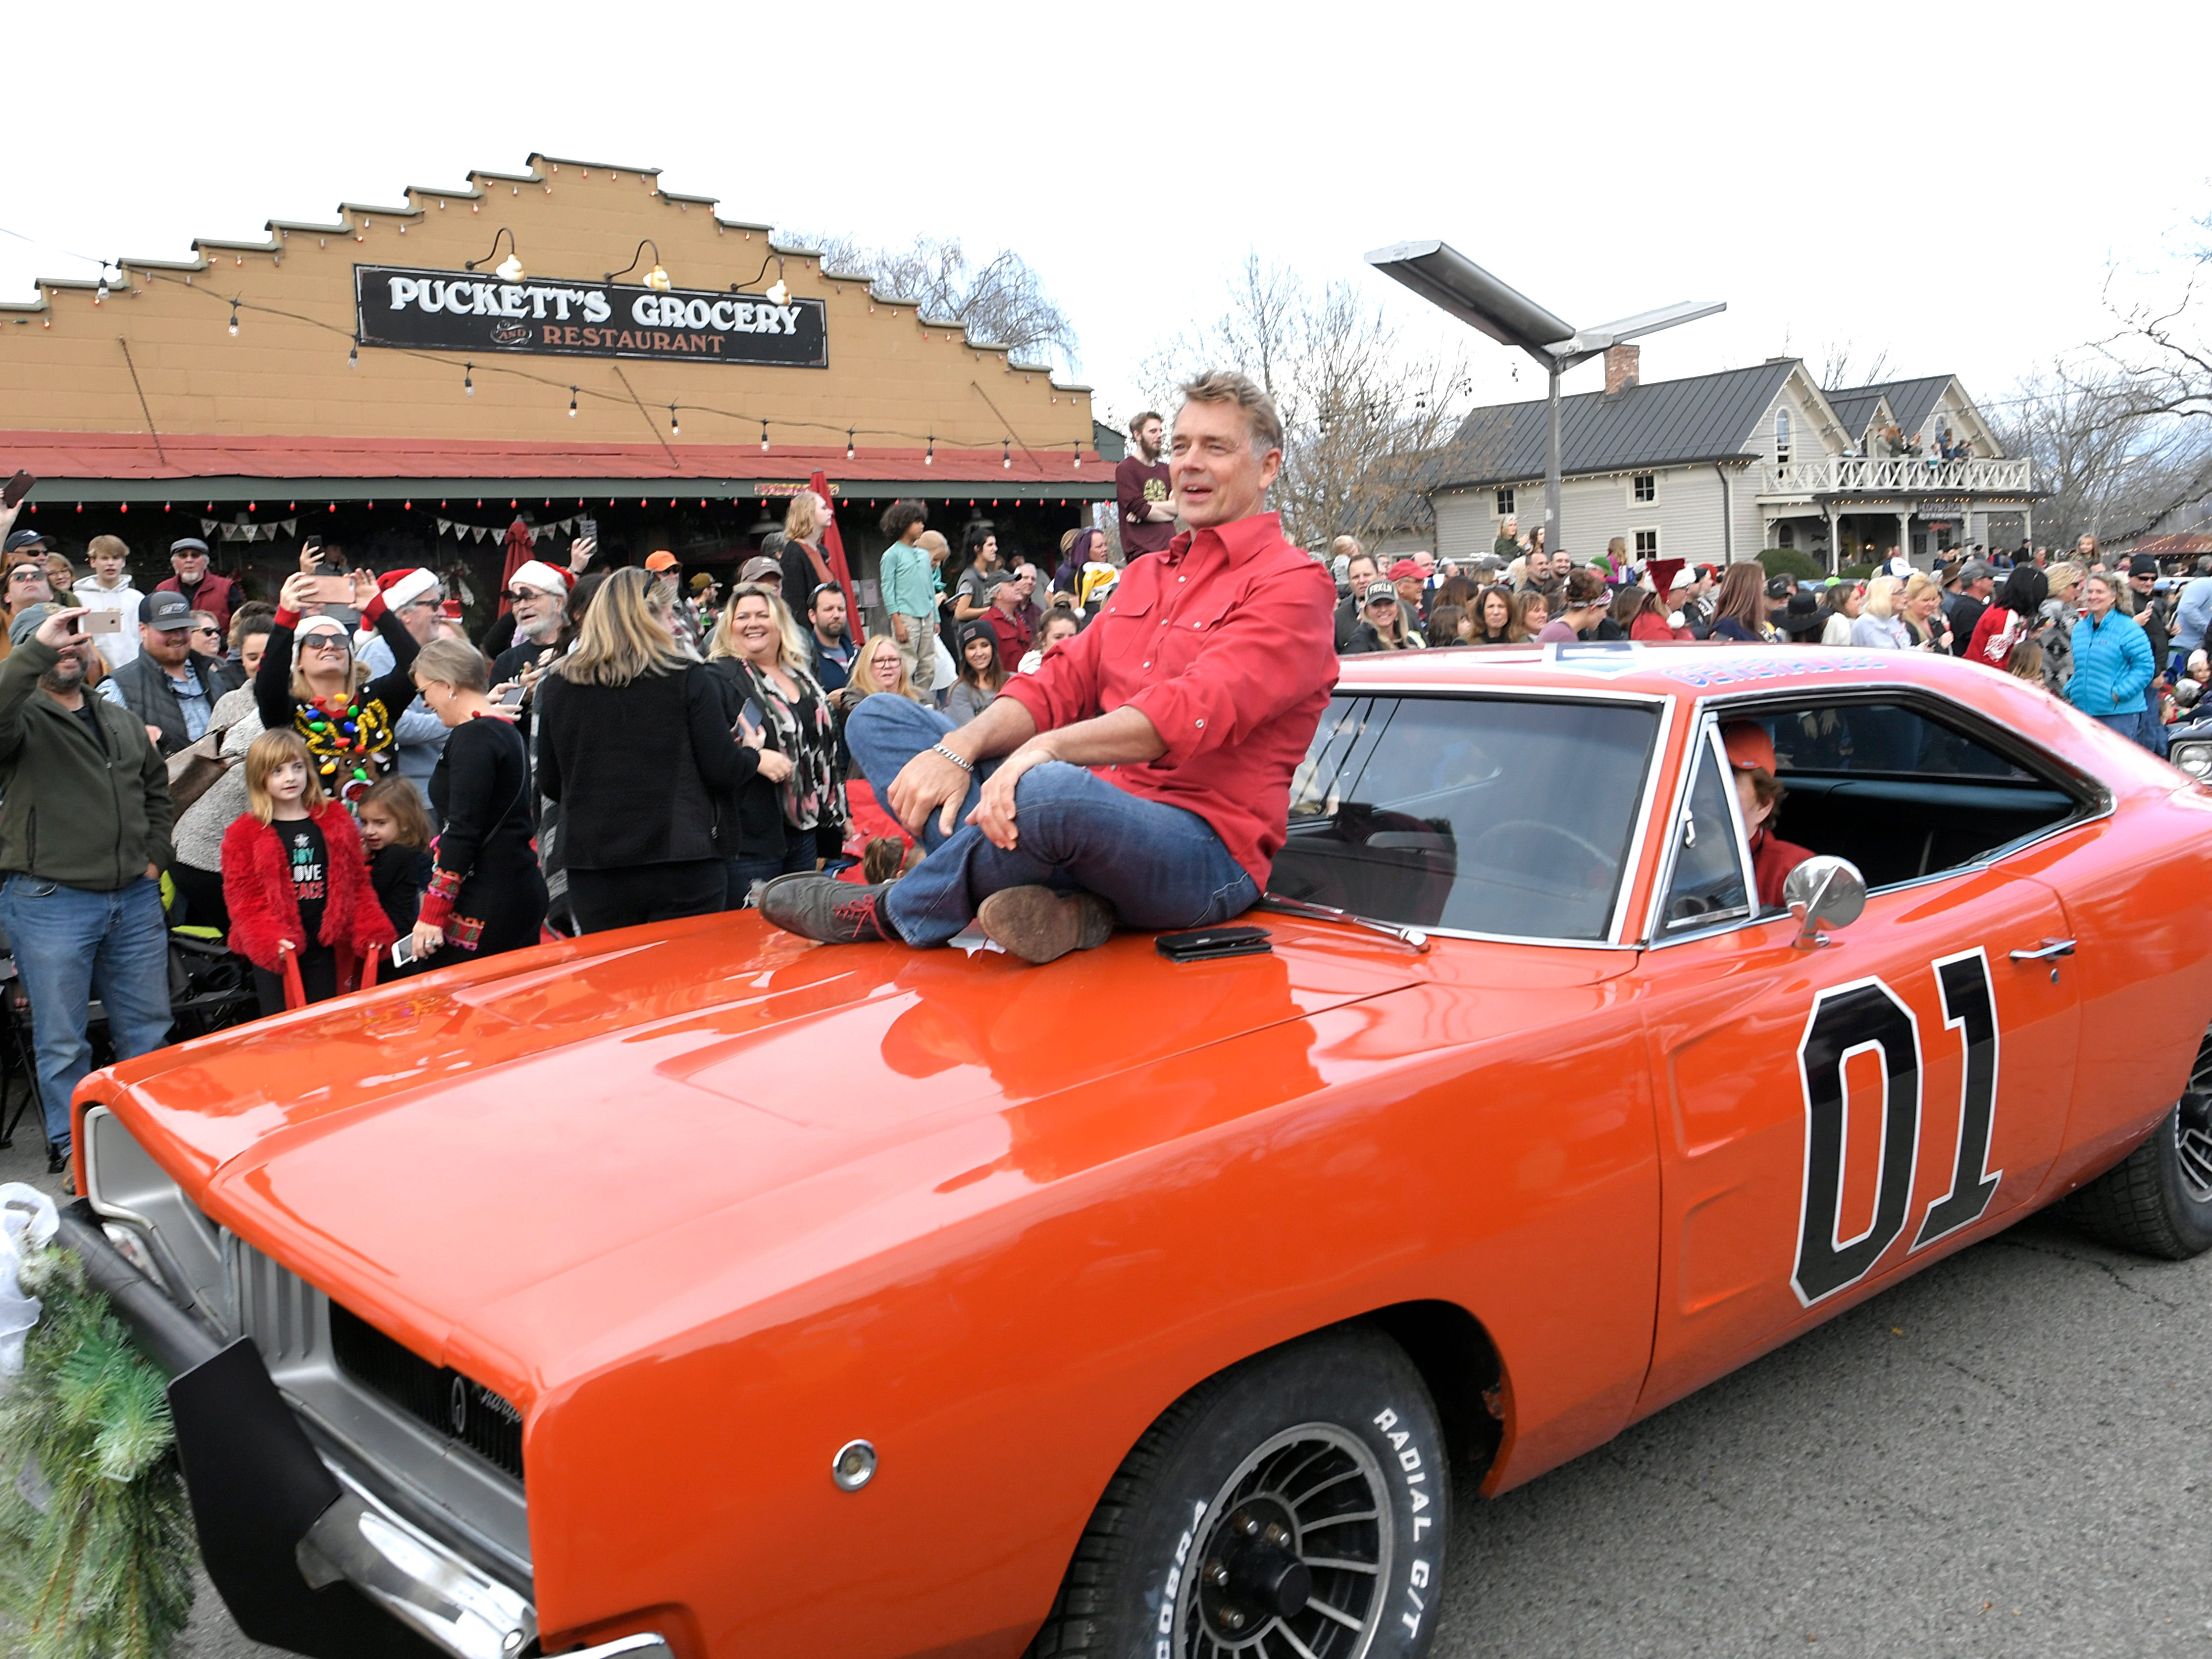 John Schneider from the show the Dukes of Hazzard was the Grand Marshal of Leipers Fork Christmas Parade on Saturday, Dec. 15, 2018.